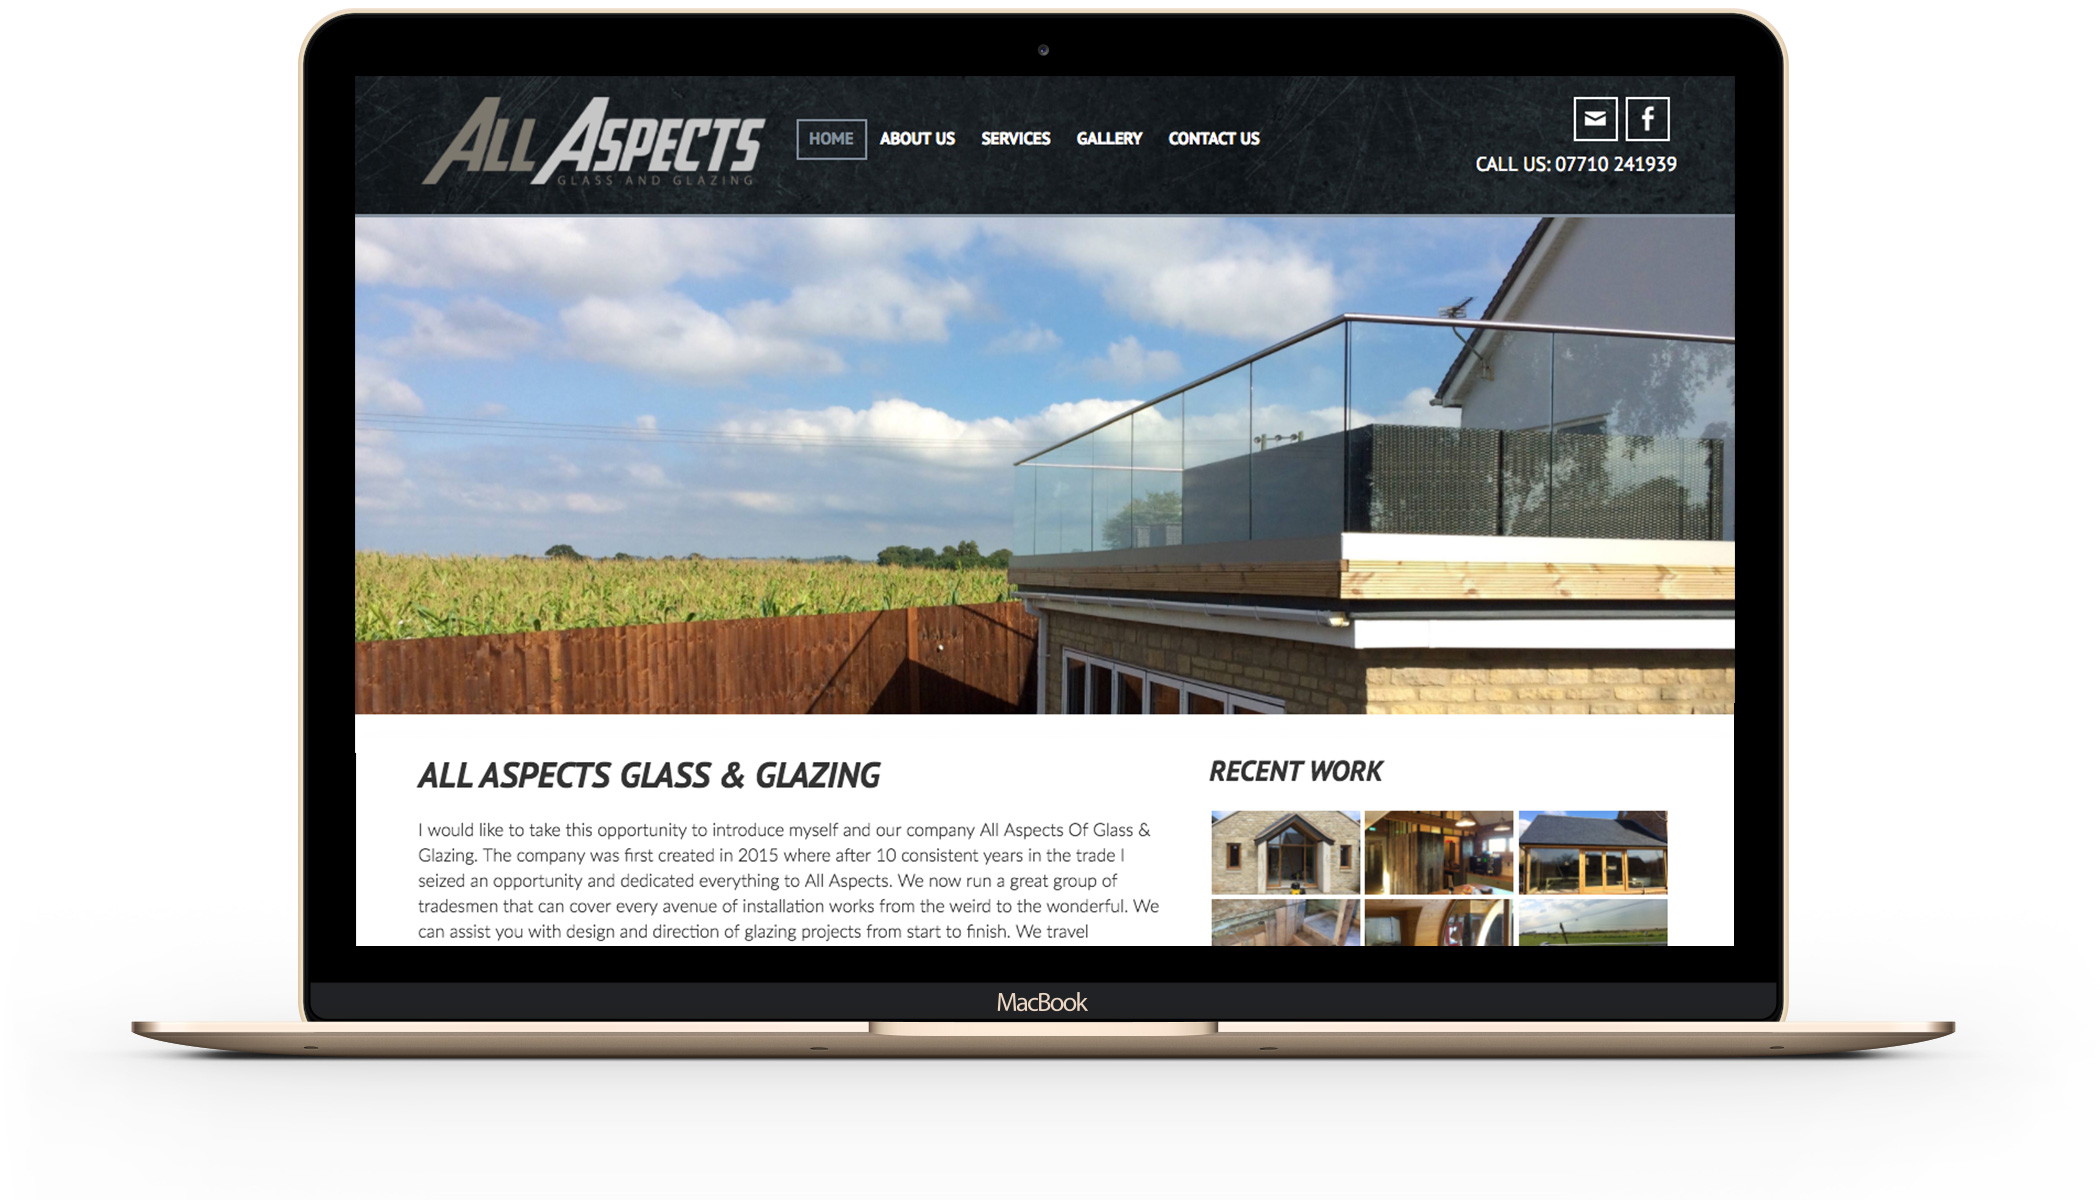 All Aspects Glass & Glazing website design